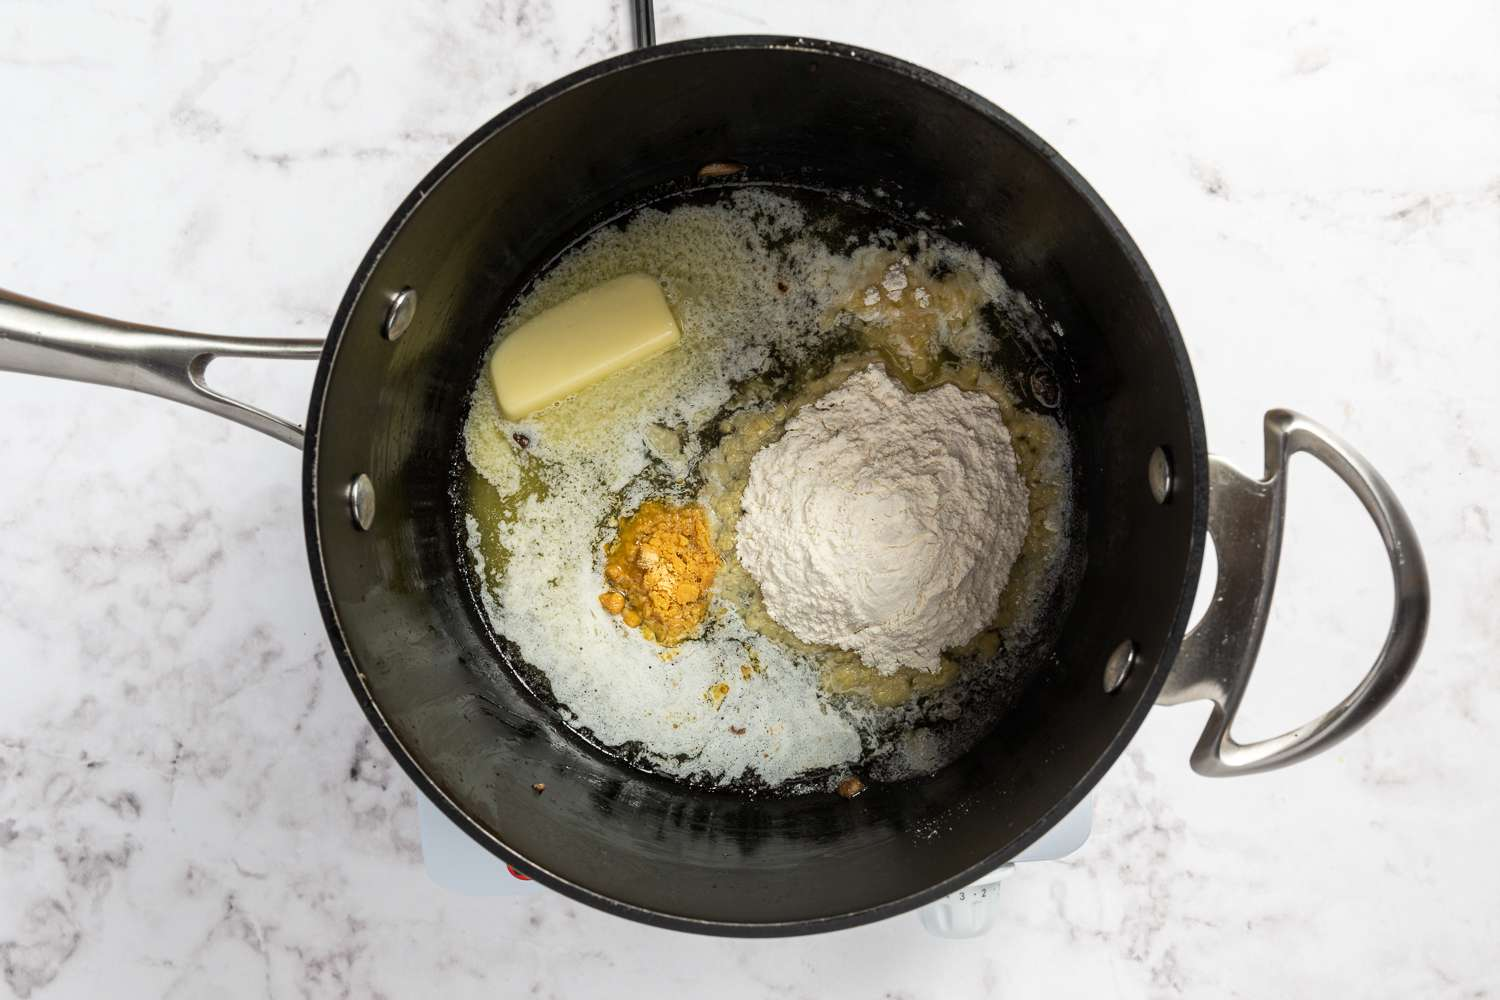 butter, flour and dry mustard in a saucepan